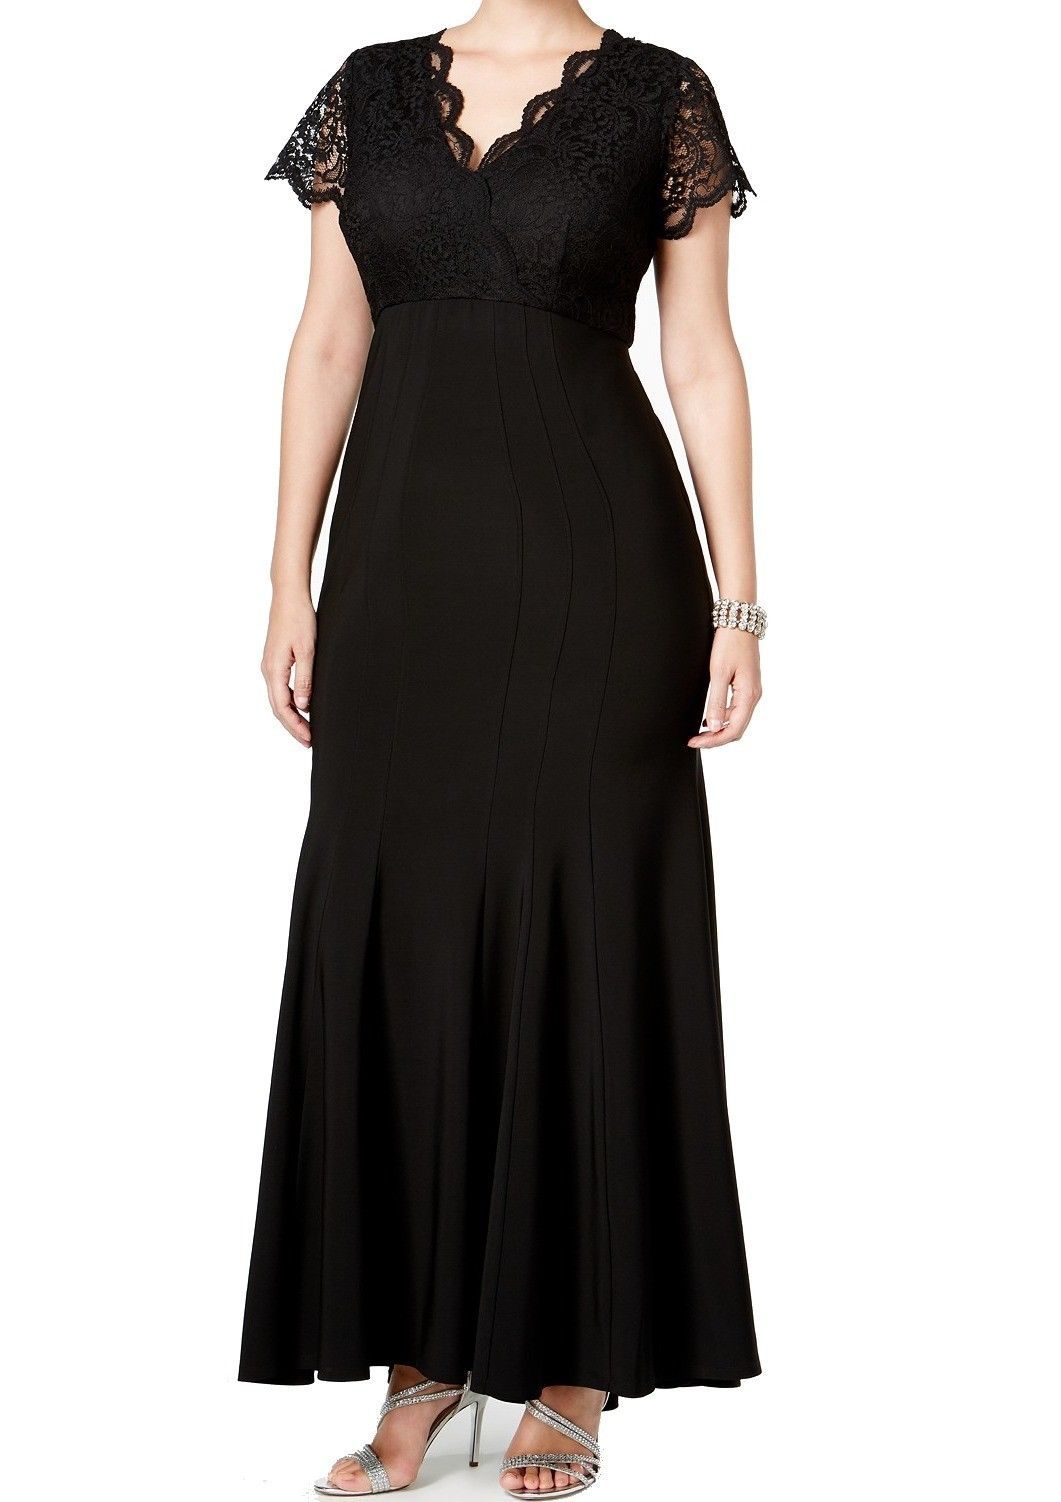 be1f6007a11 Awesome Betsy   Adam NEW Black Womens Size 20W Plus Lace-Trim Ball Gown  Dress